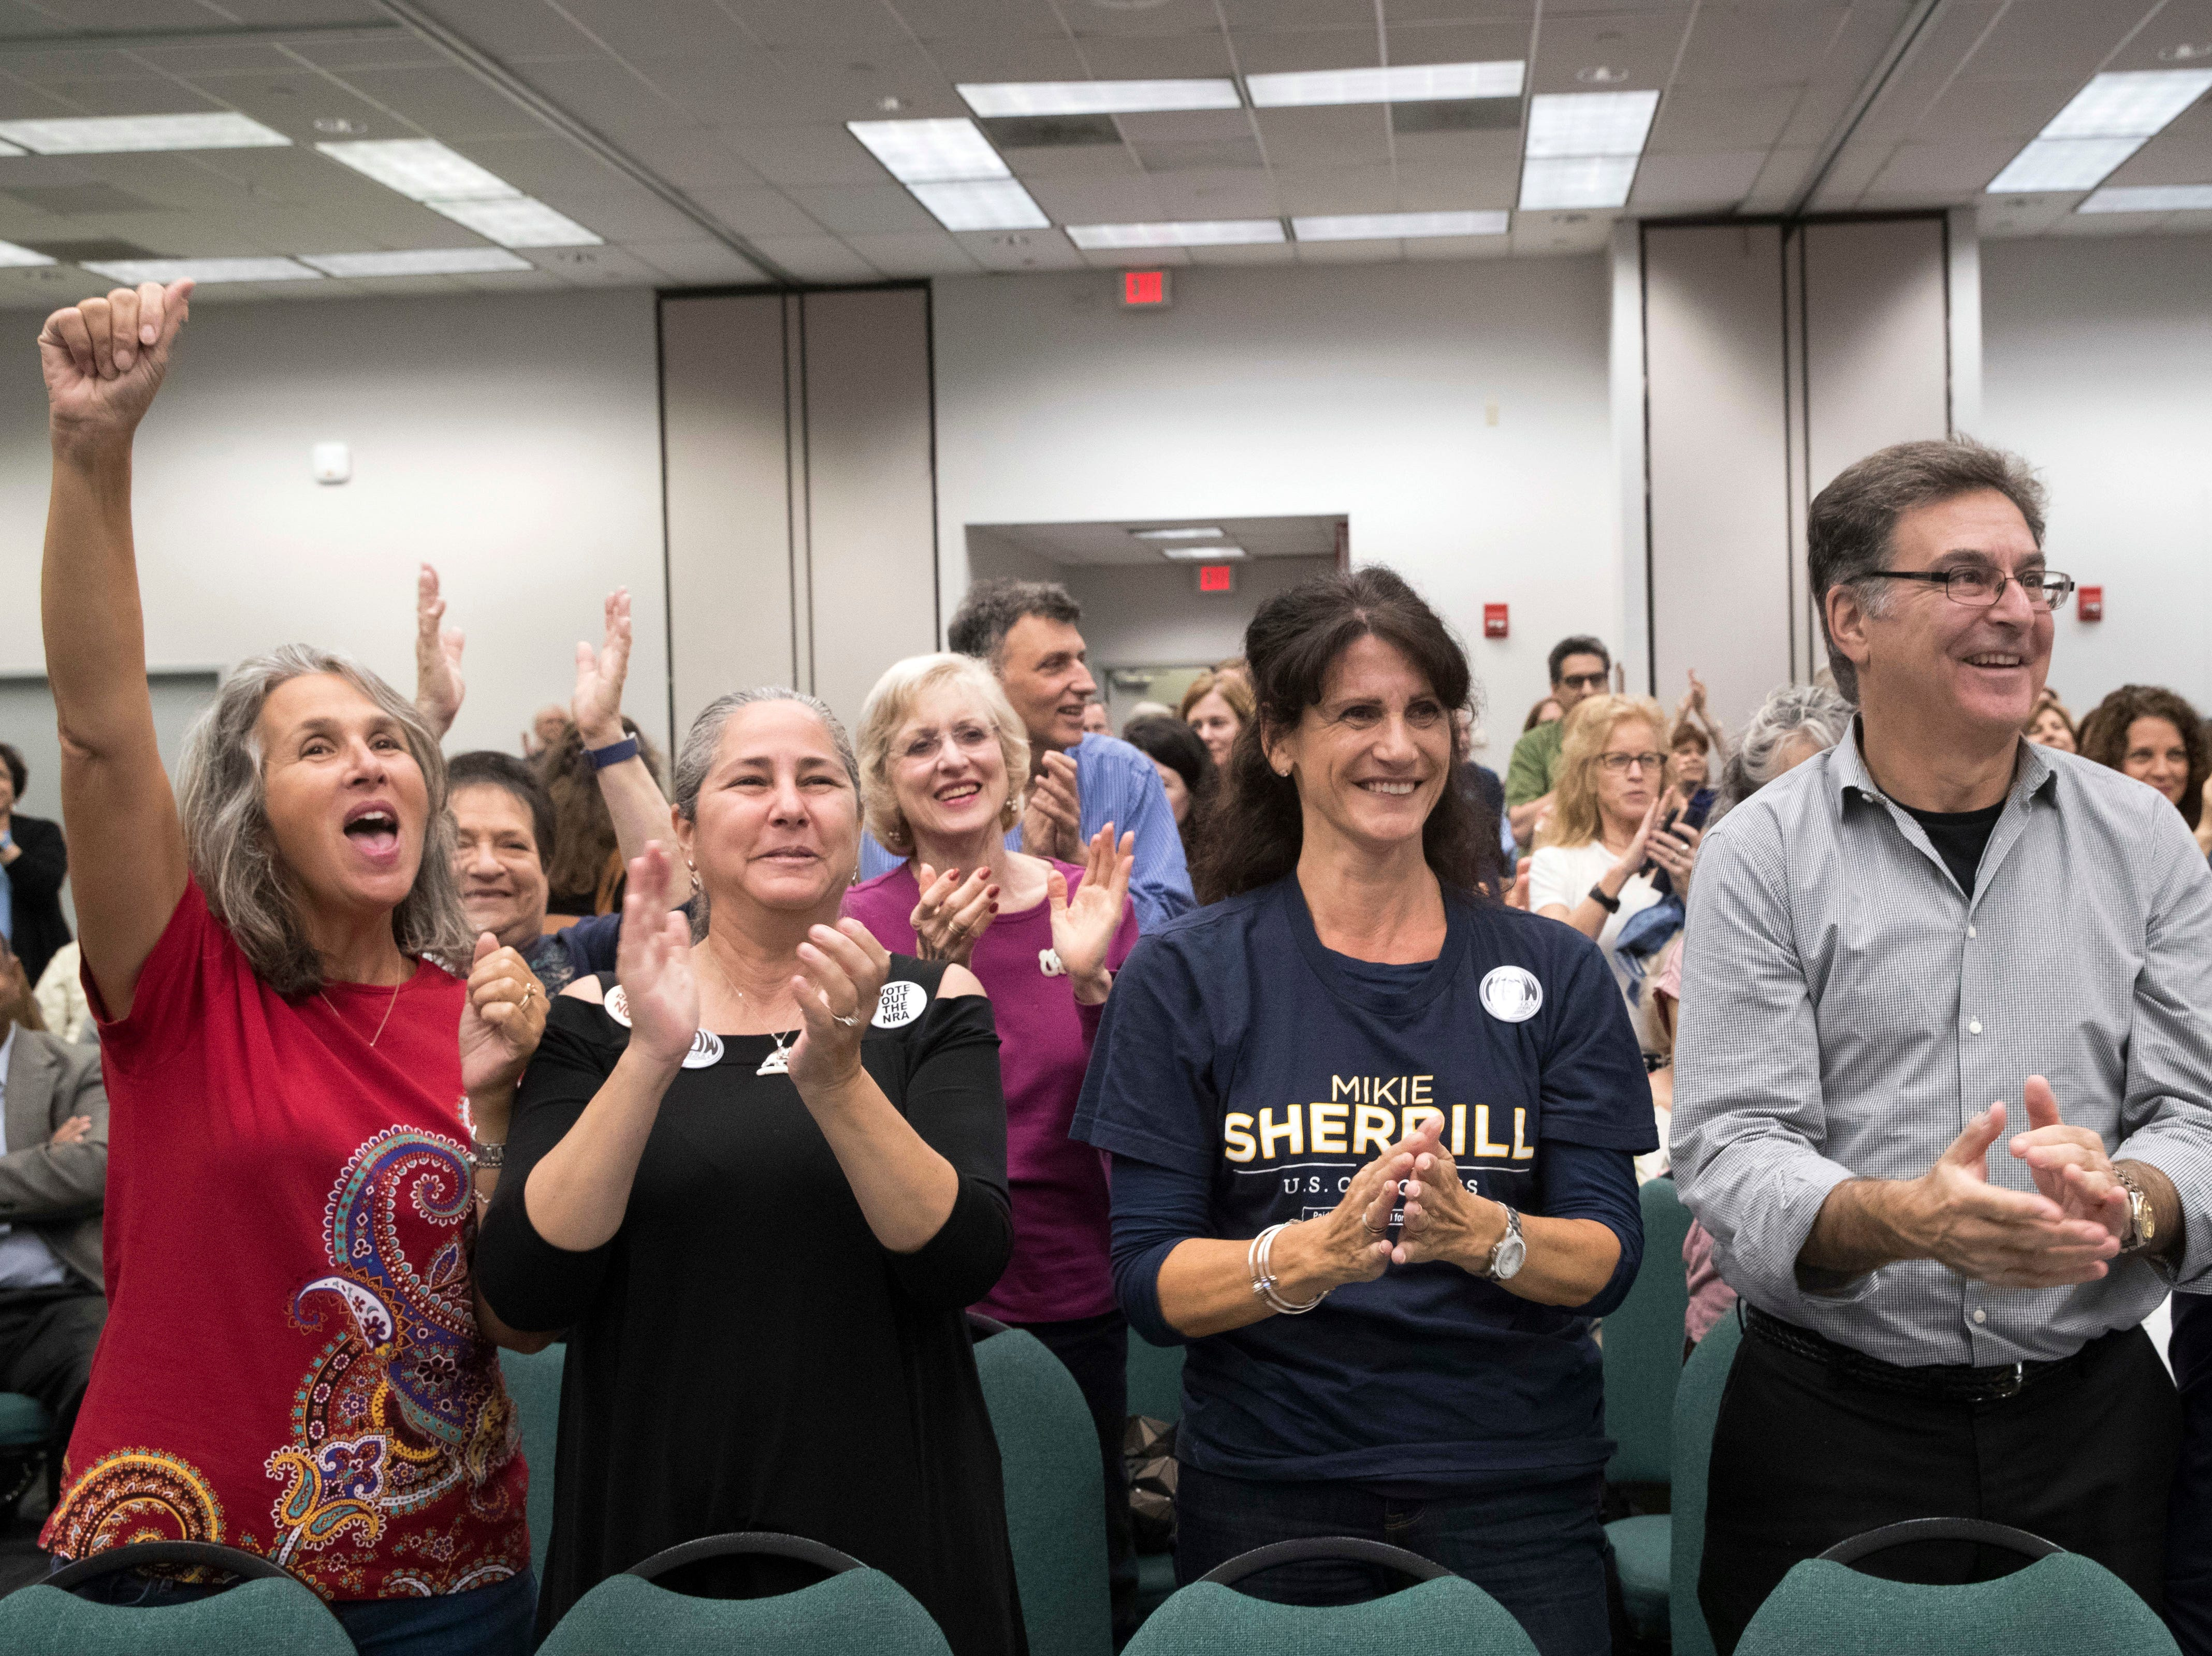 Supporters of Democratic congressional candidate Mikie Sherrill cheer as she arrives for a candidate forum at the UJC of MetroWest New Jersey, Tuesday, Oct. 9, 2018, in Whippany, N.J. (AP Photo/Mary Altaffer)